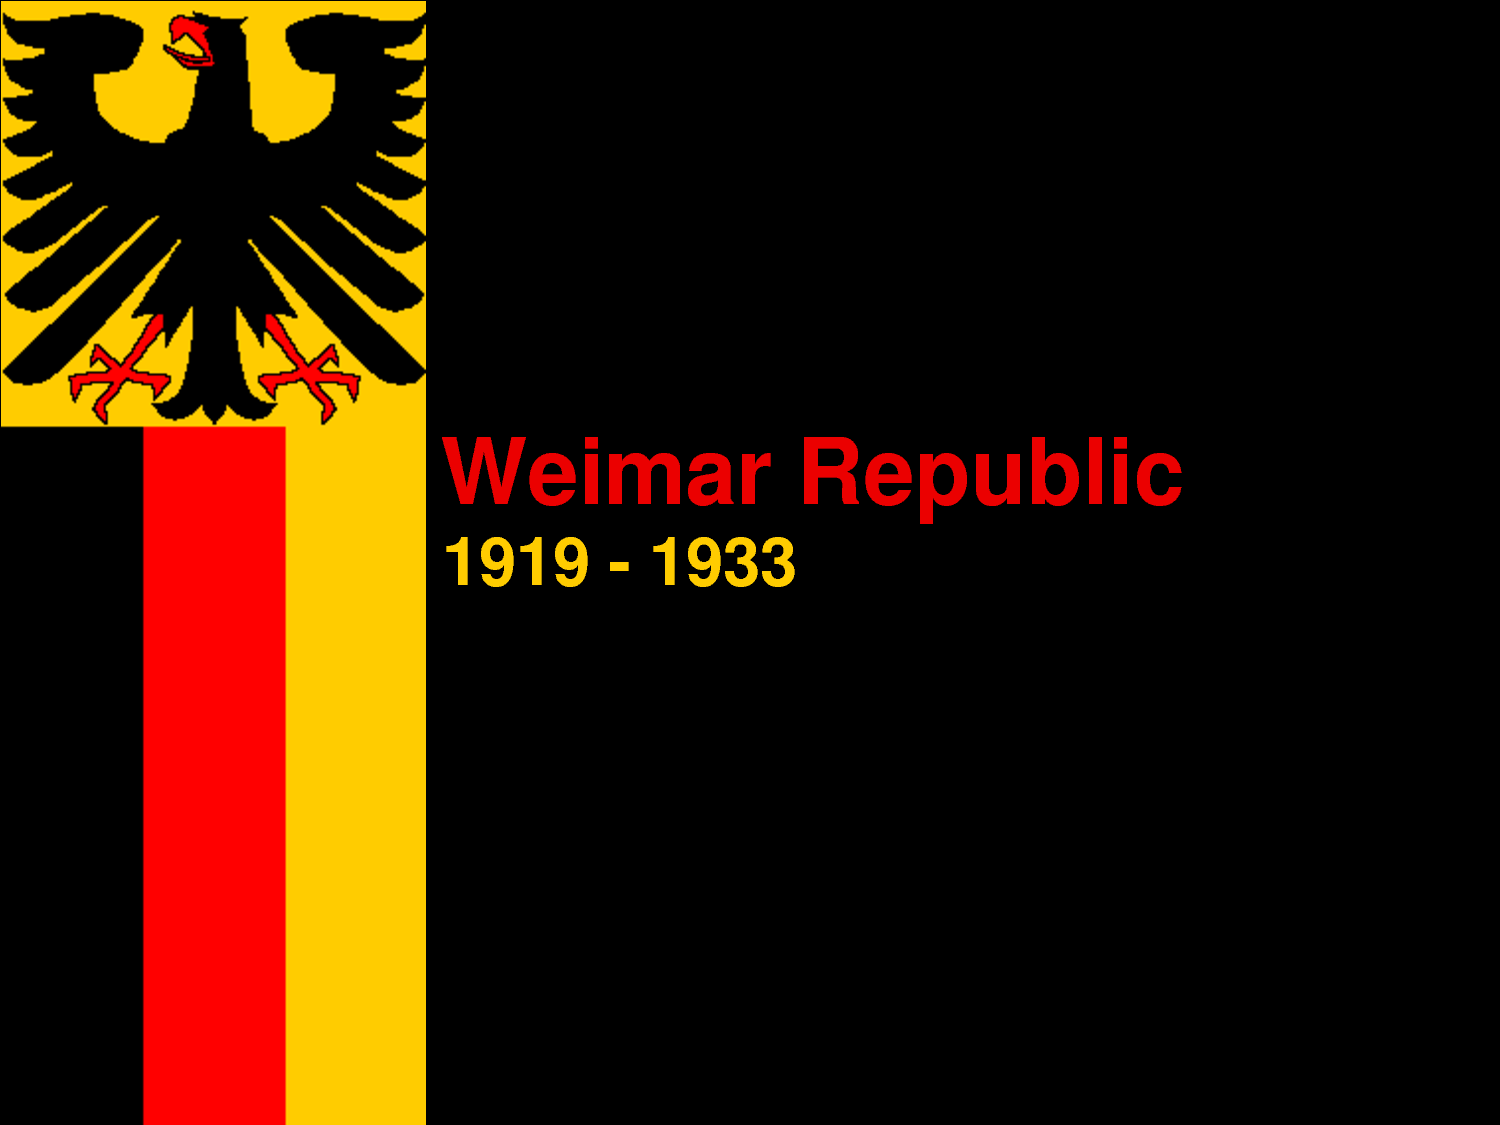 an overview of the weimar republic